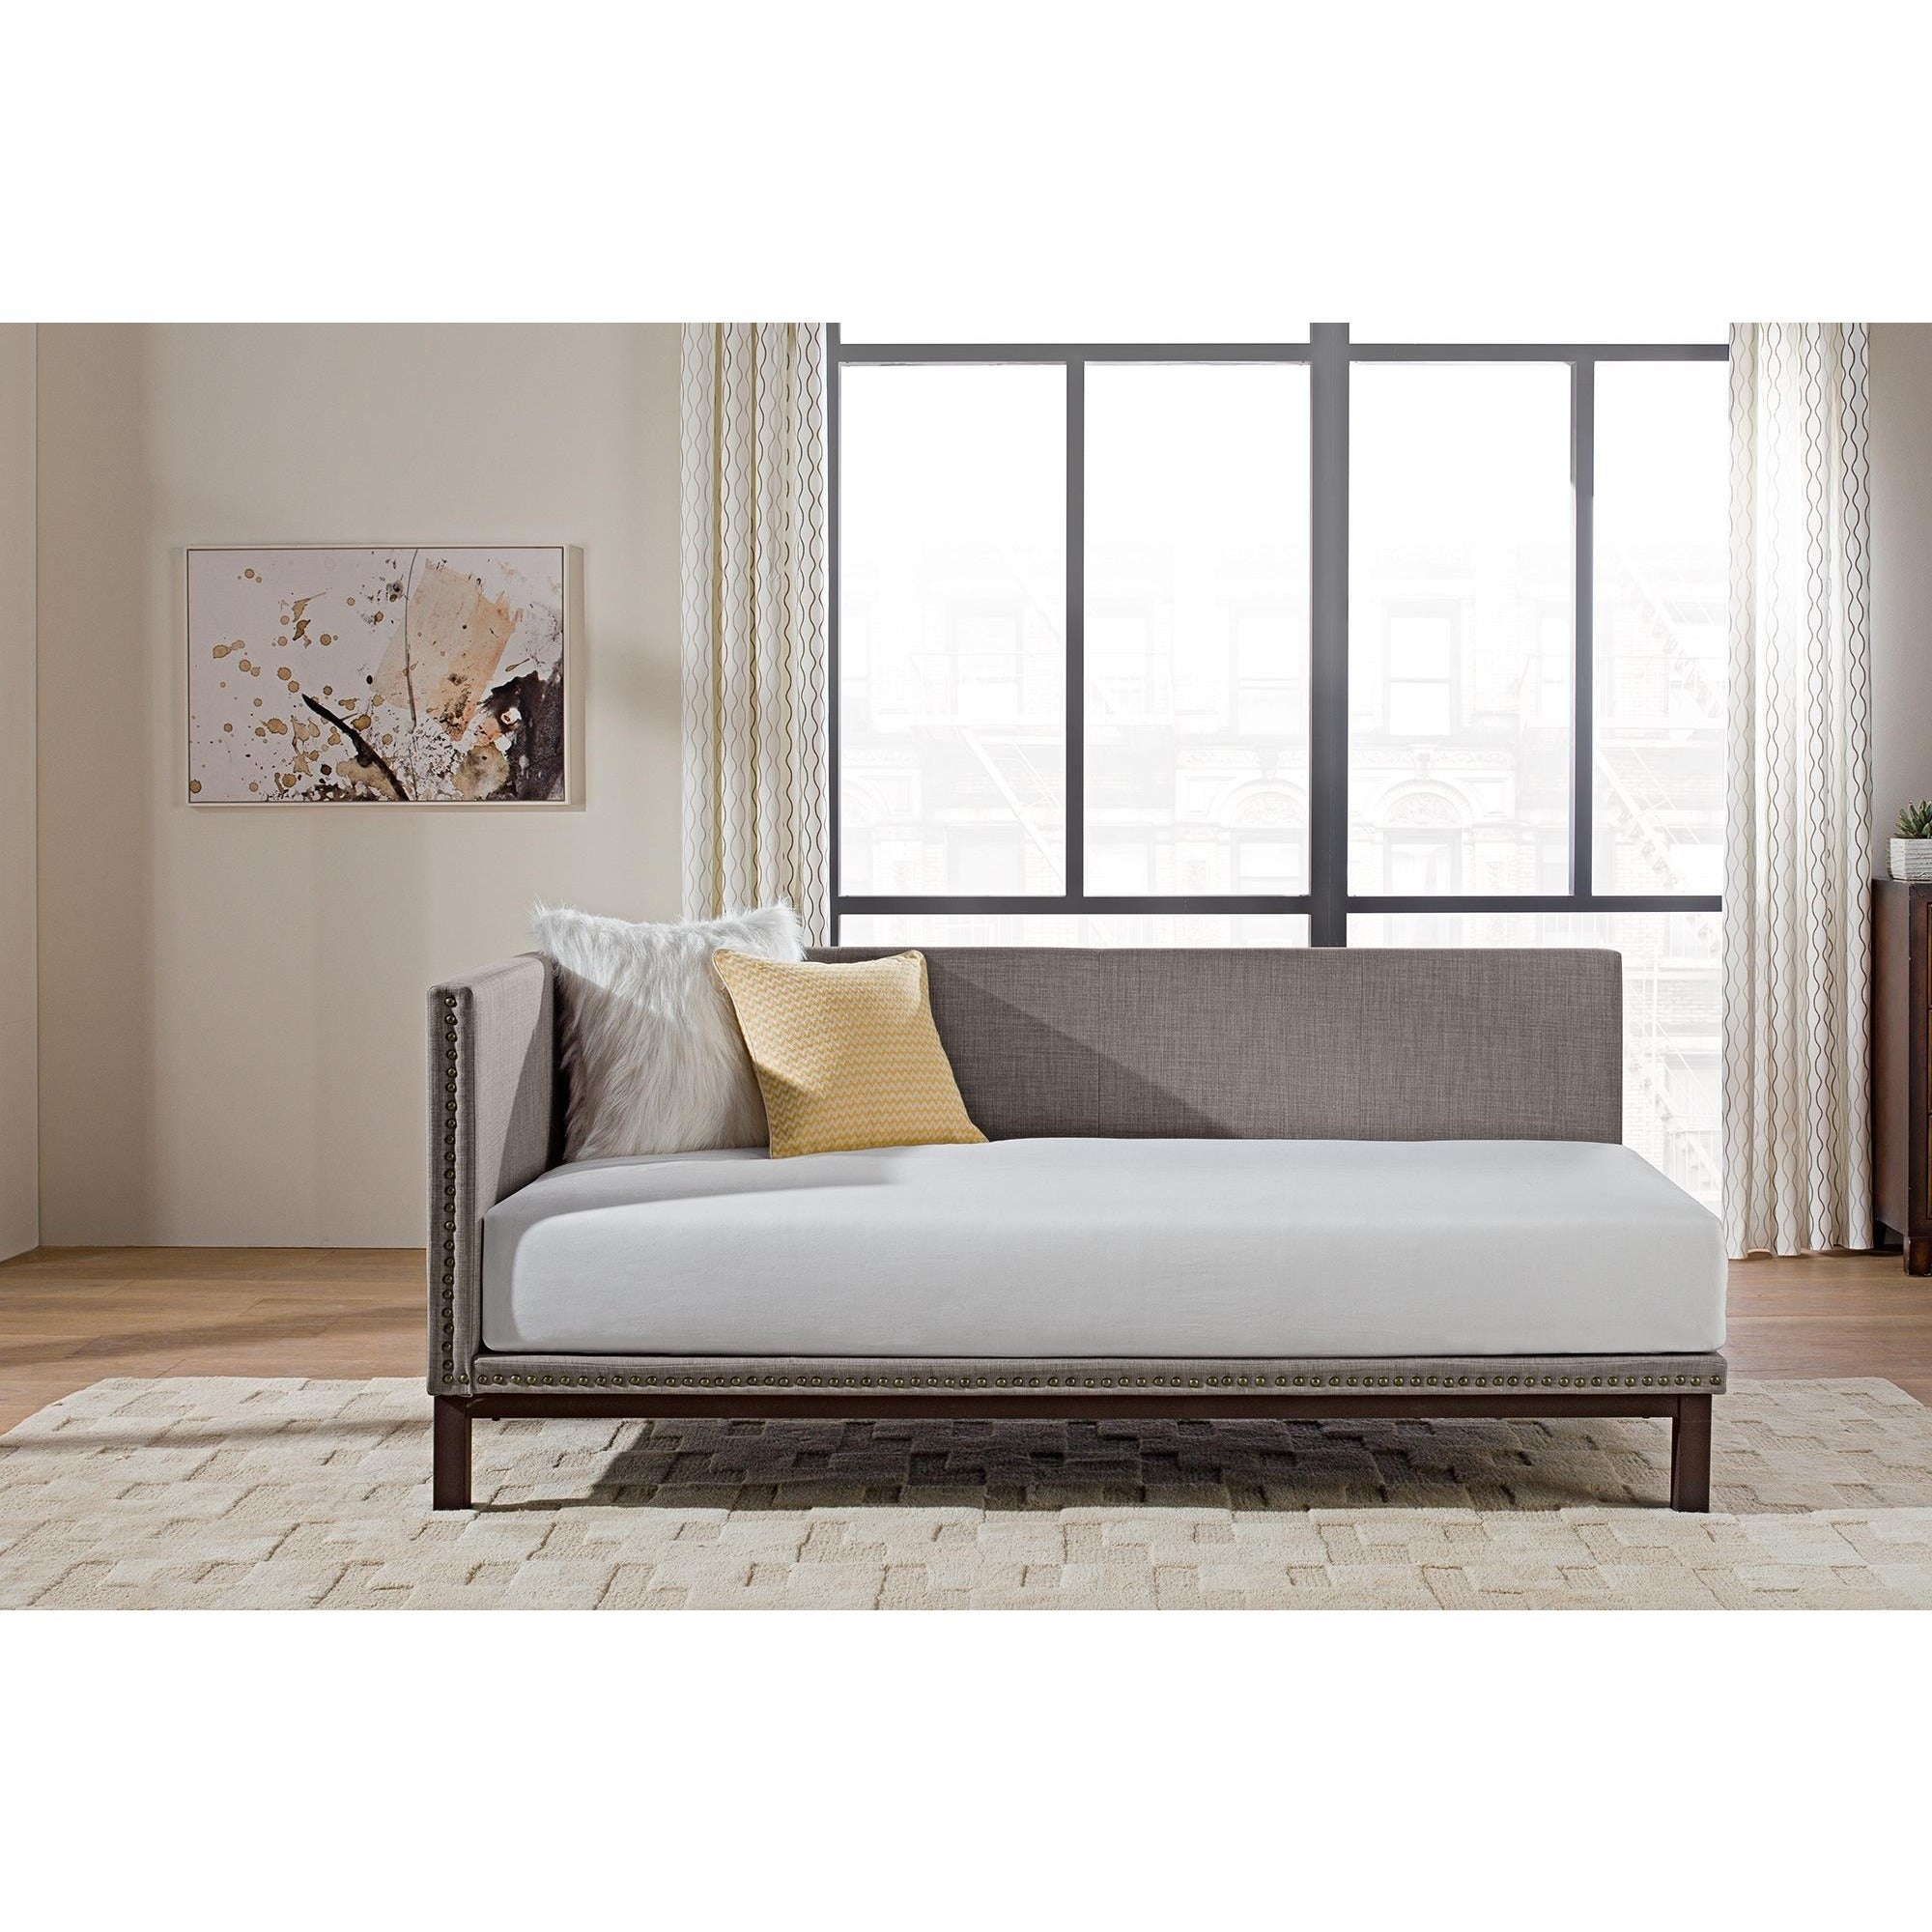 Genial Shop Copper Grove Alty Mid Century Grey Upholstered Modern Daybed   Free  Shipping Today   Overstock   21895216